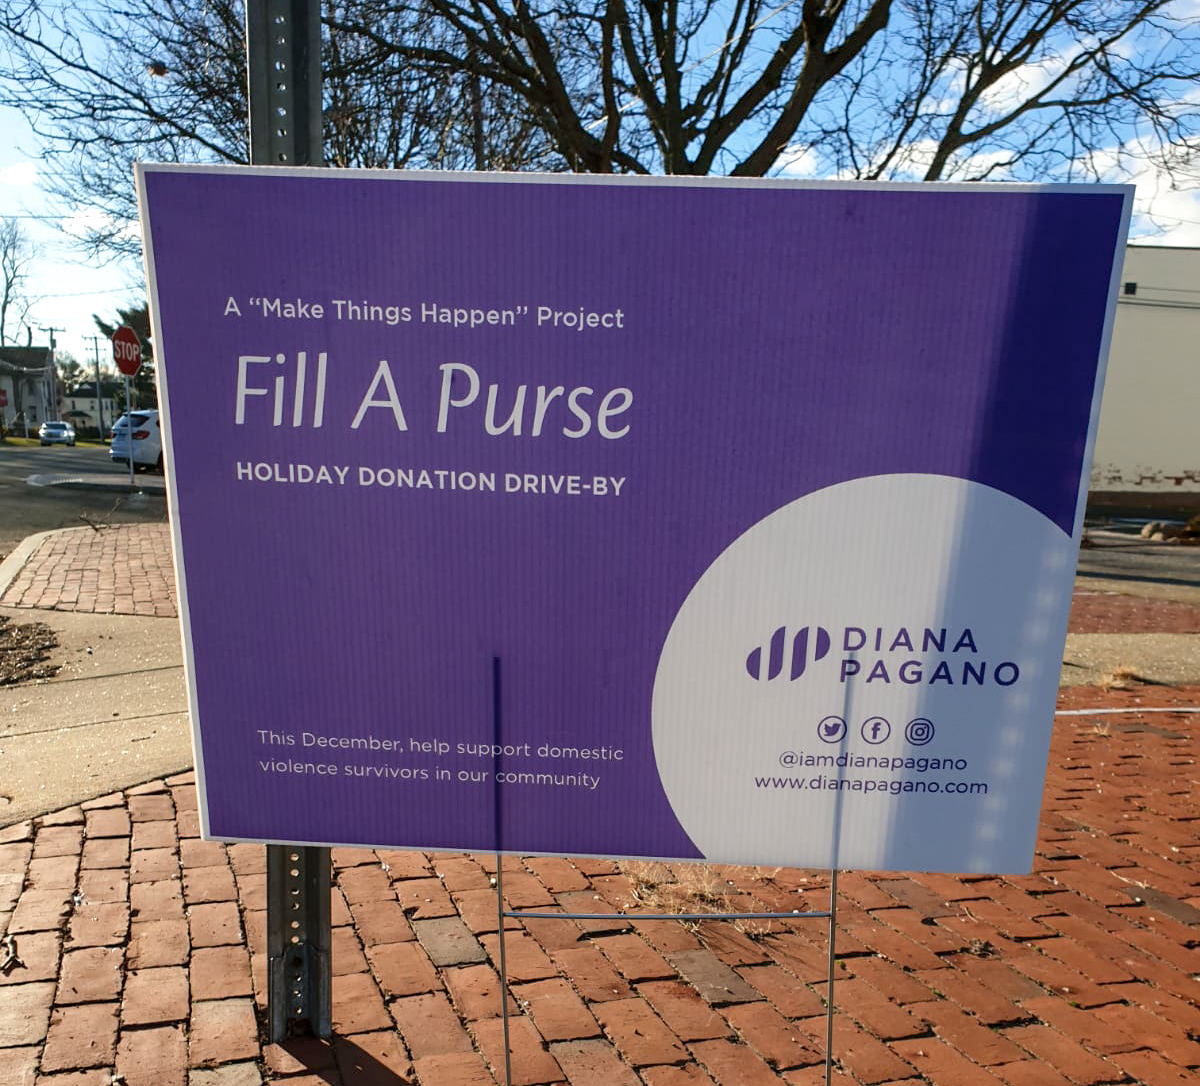 Fill a Purse Domestic Violence Drive Organized by Diana Pagano